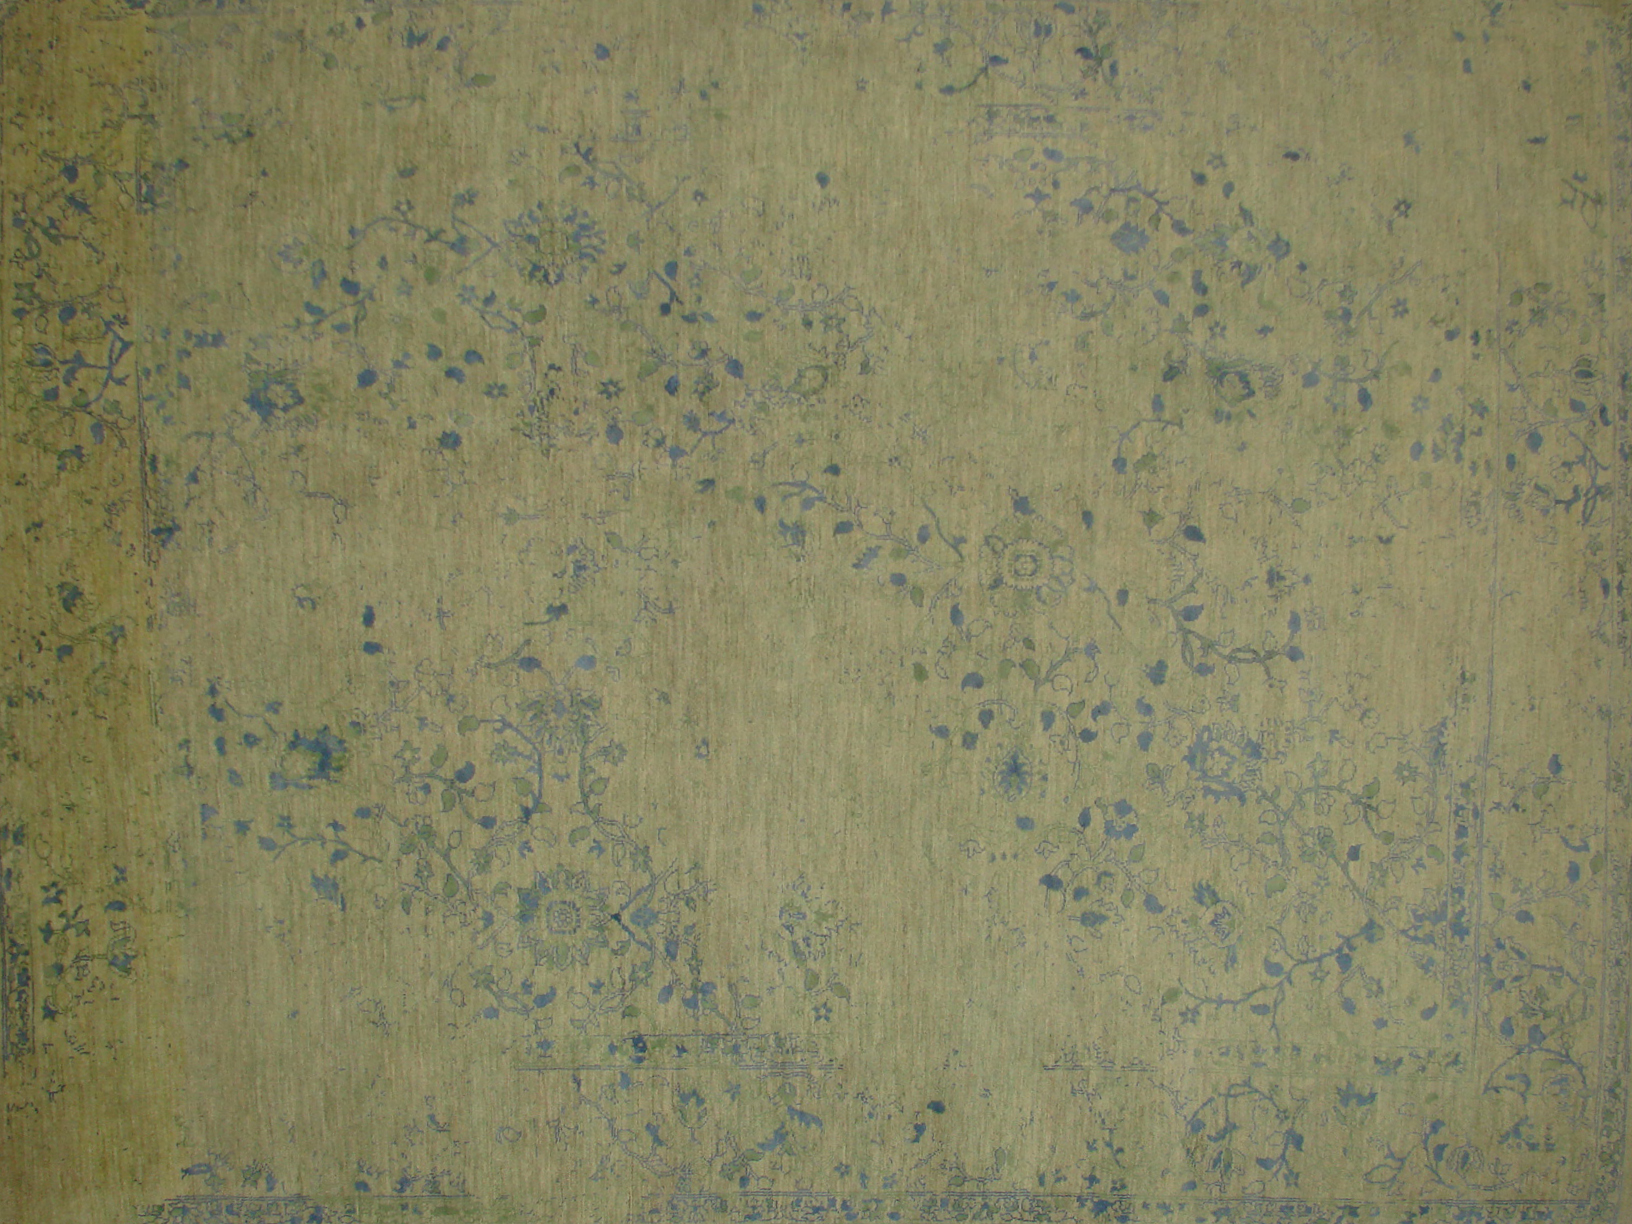 8x10 Peshawar Hand Knotted Wool Area Rug - MR20859